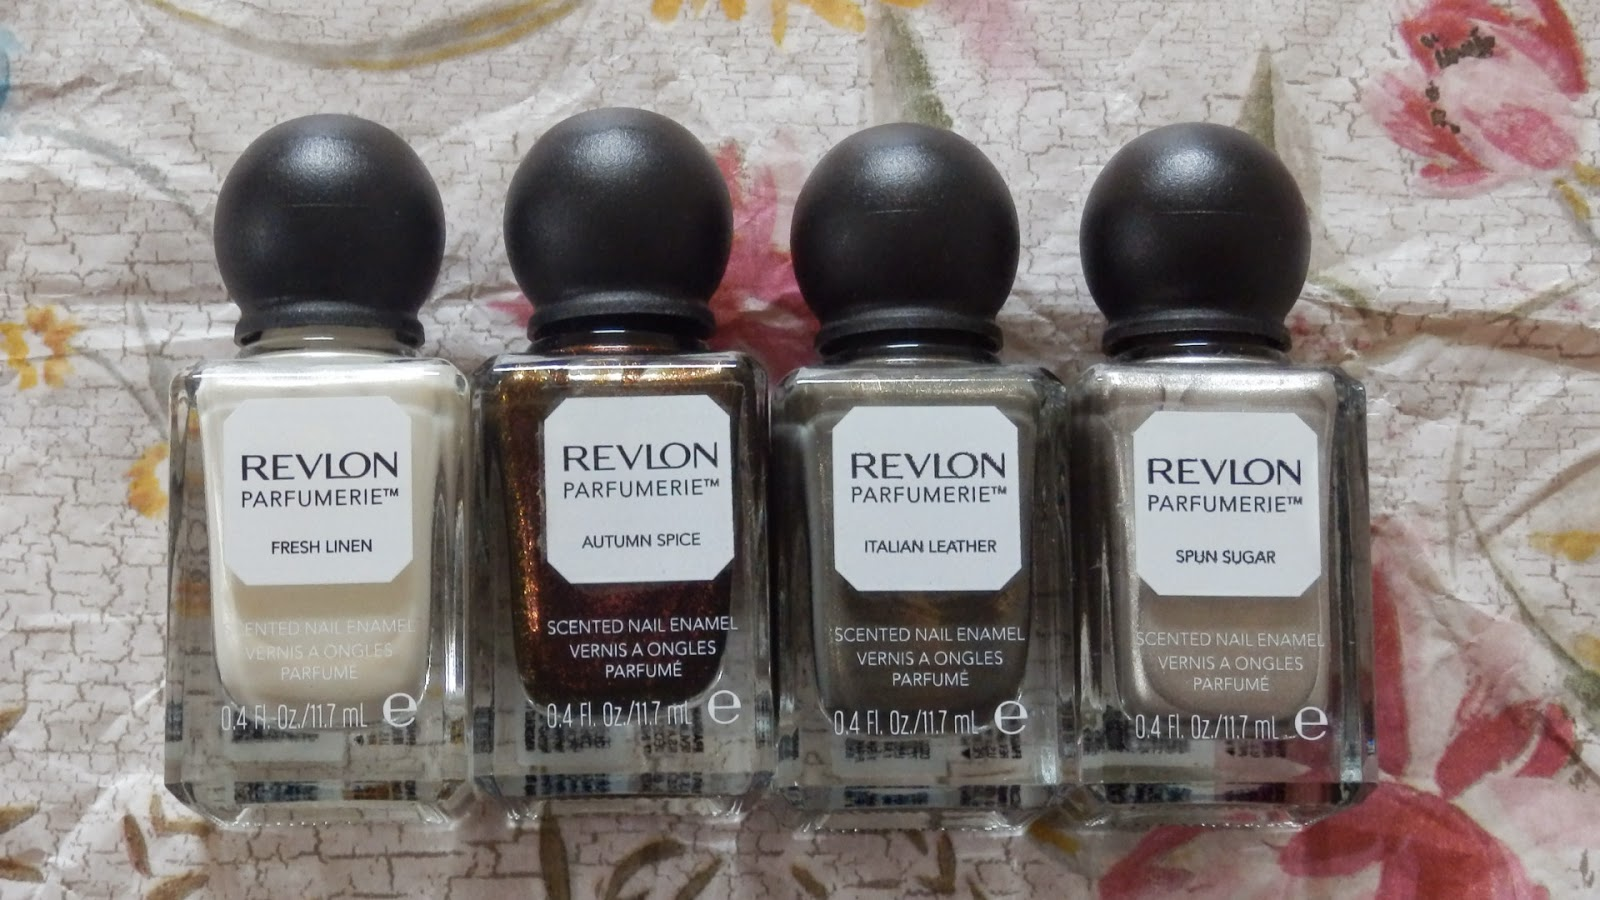 Revlon Parfumerie Nail Polish Haul from Poundworld